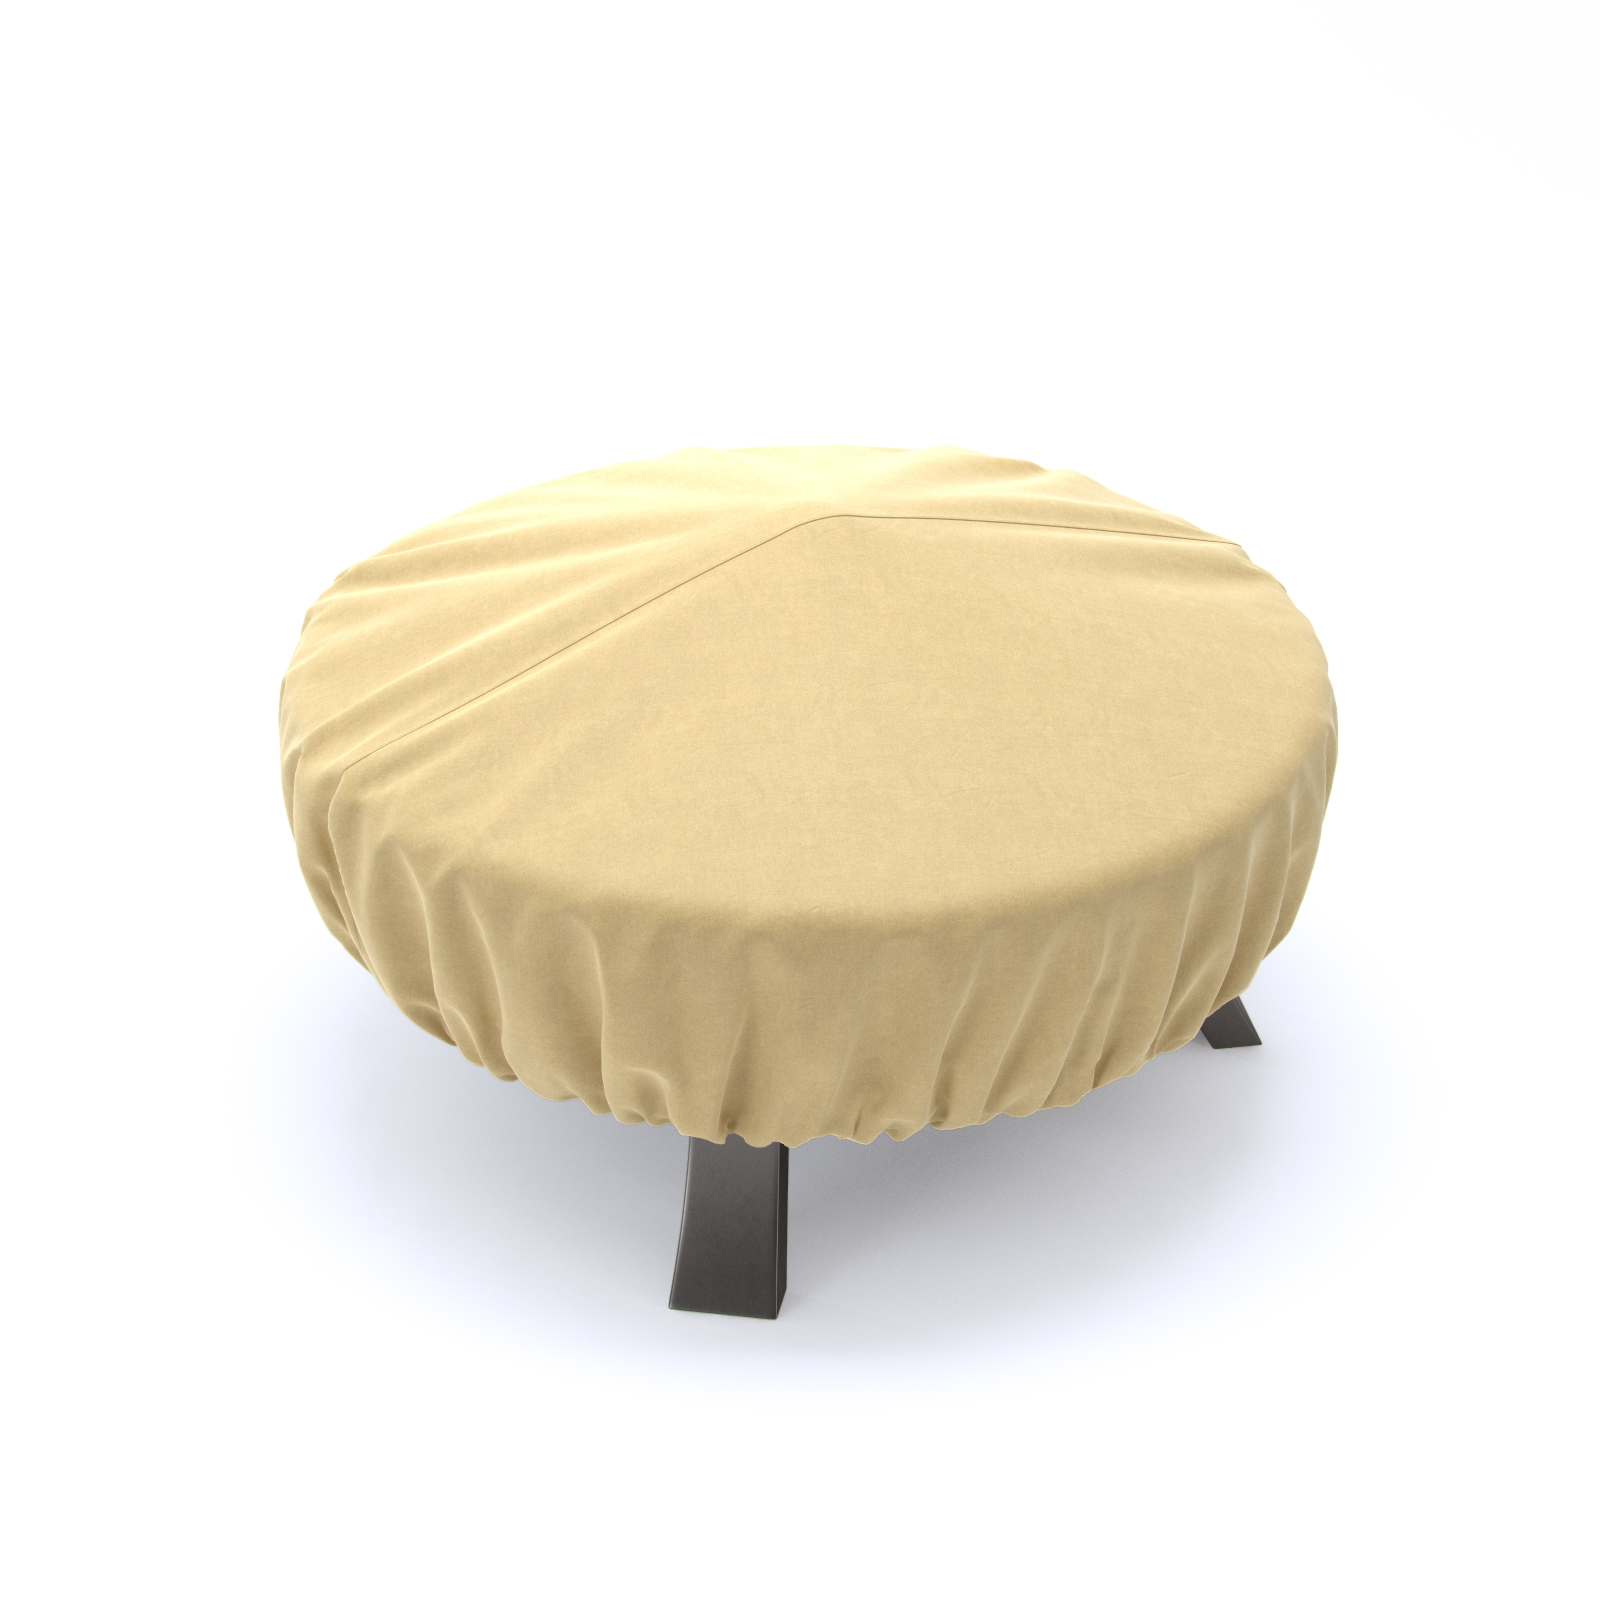 Swell Fade Proof Tane 44 Heavy Duty Round Fire Pit Cover Durable And Water Resistant Firepit Cover Large Uwap Interior Chair Design Uwaporg